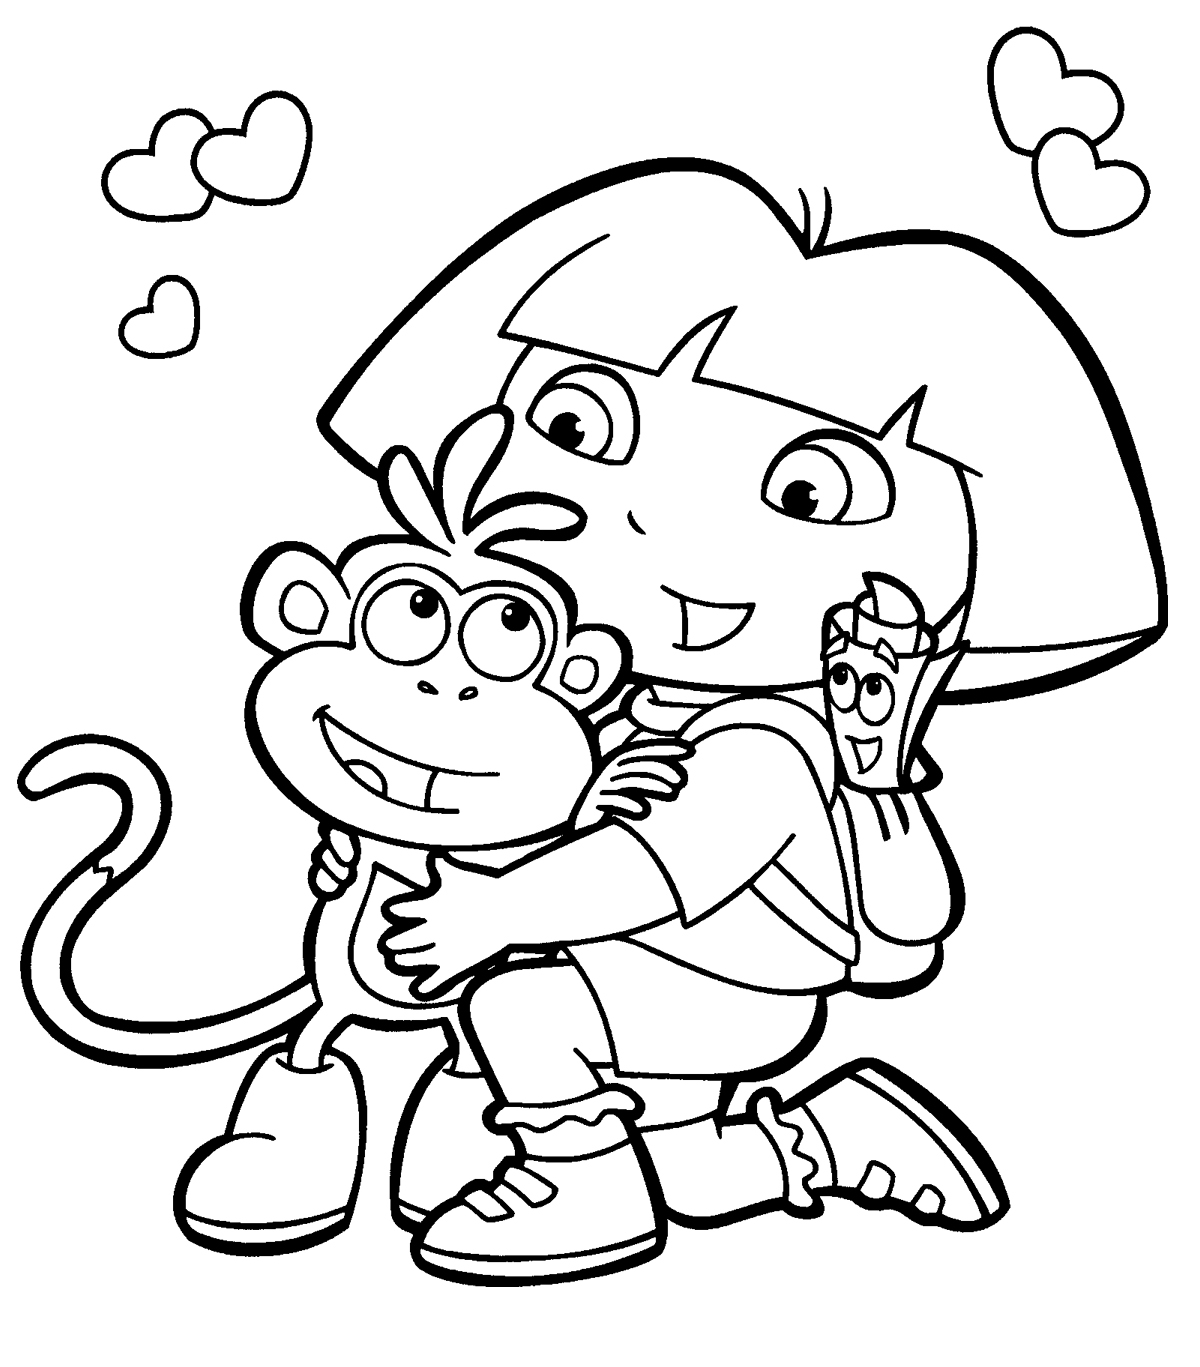 printable dora pictures 19 dora coloring pages pdf png jpeg eps free printable pictures dora